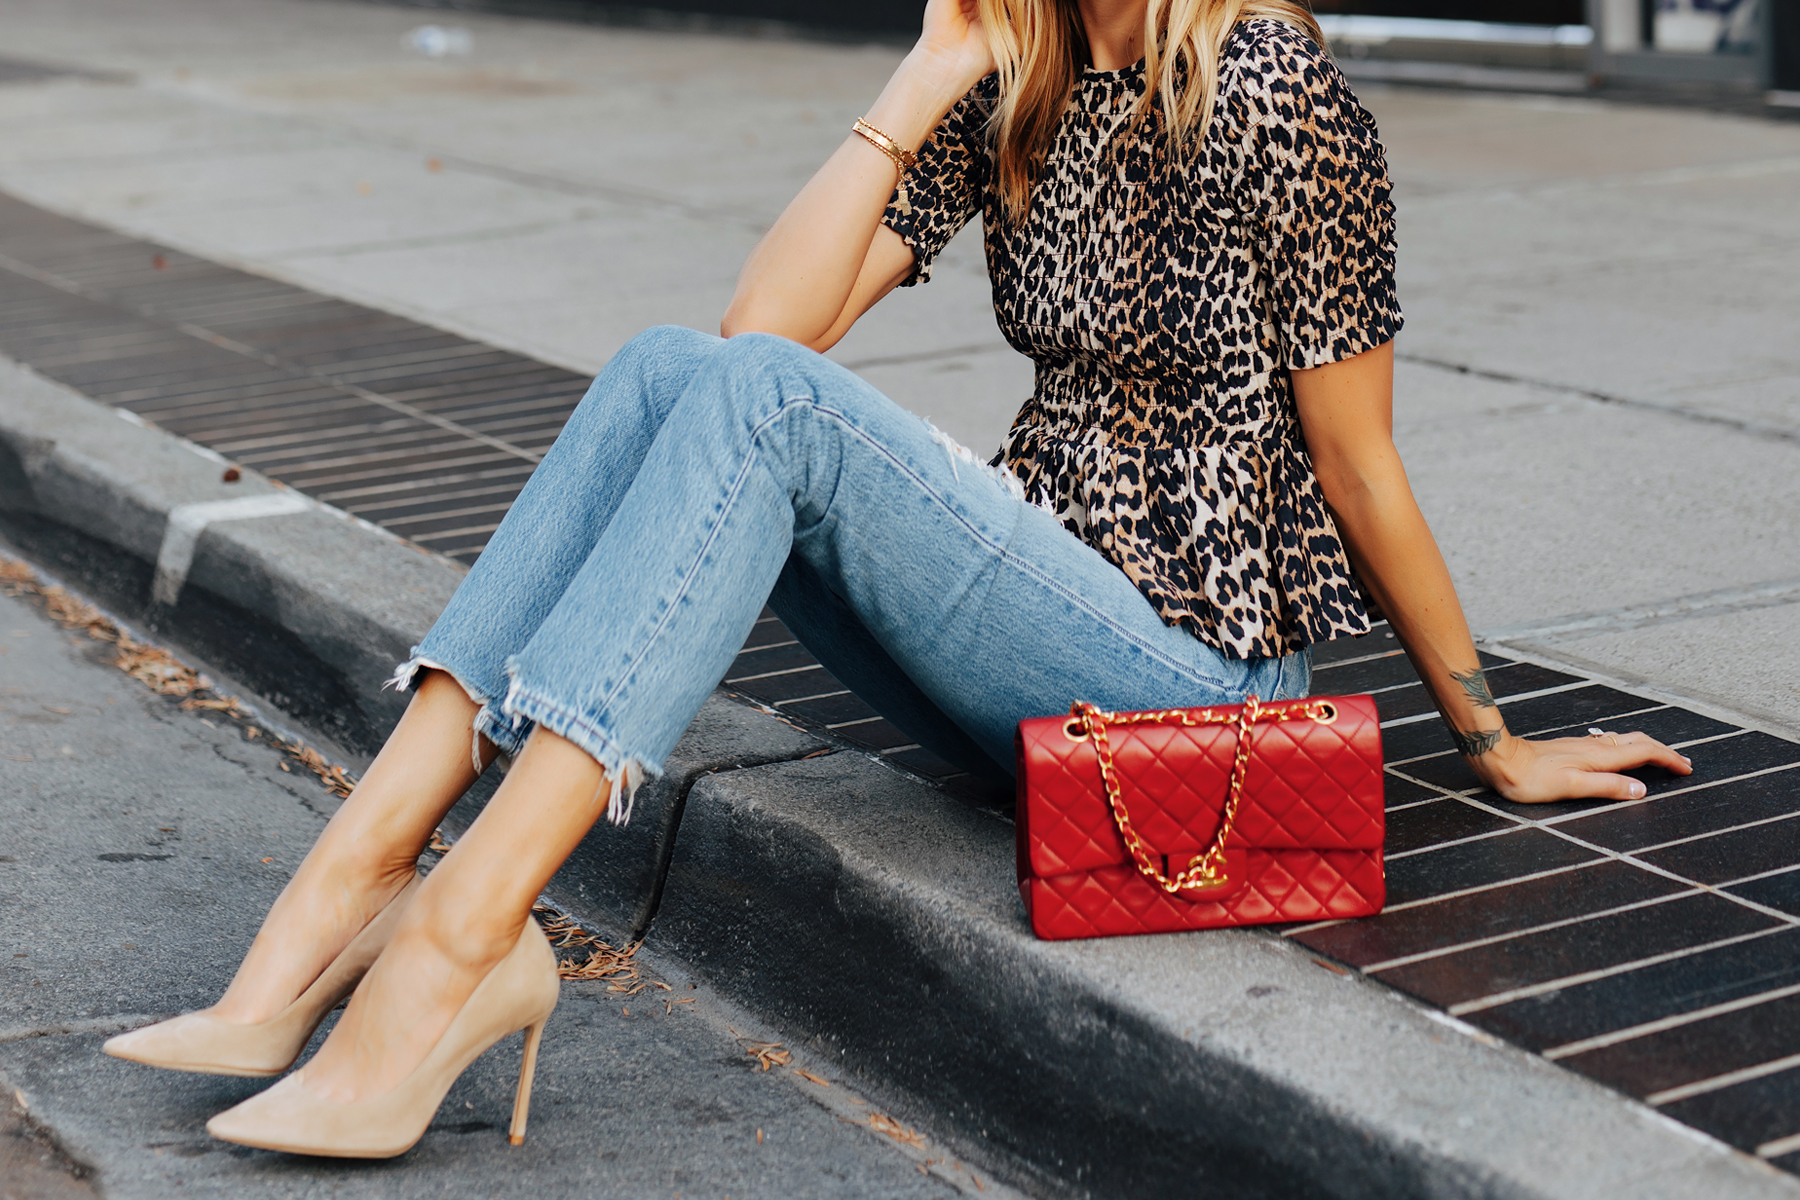 Fashion Jackson Wearing Ganni Leopard Peplum Top Levis Ripped Jeans Jimmy Choo BB Nude Pumps Chanel Classic Flap Red Handbag 3